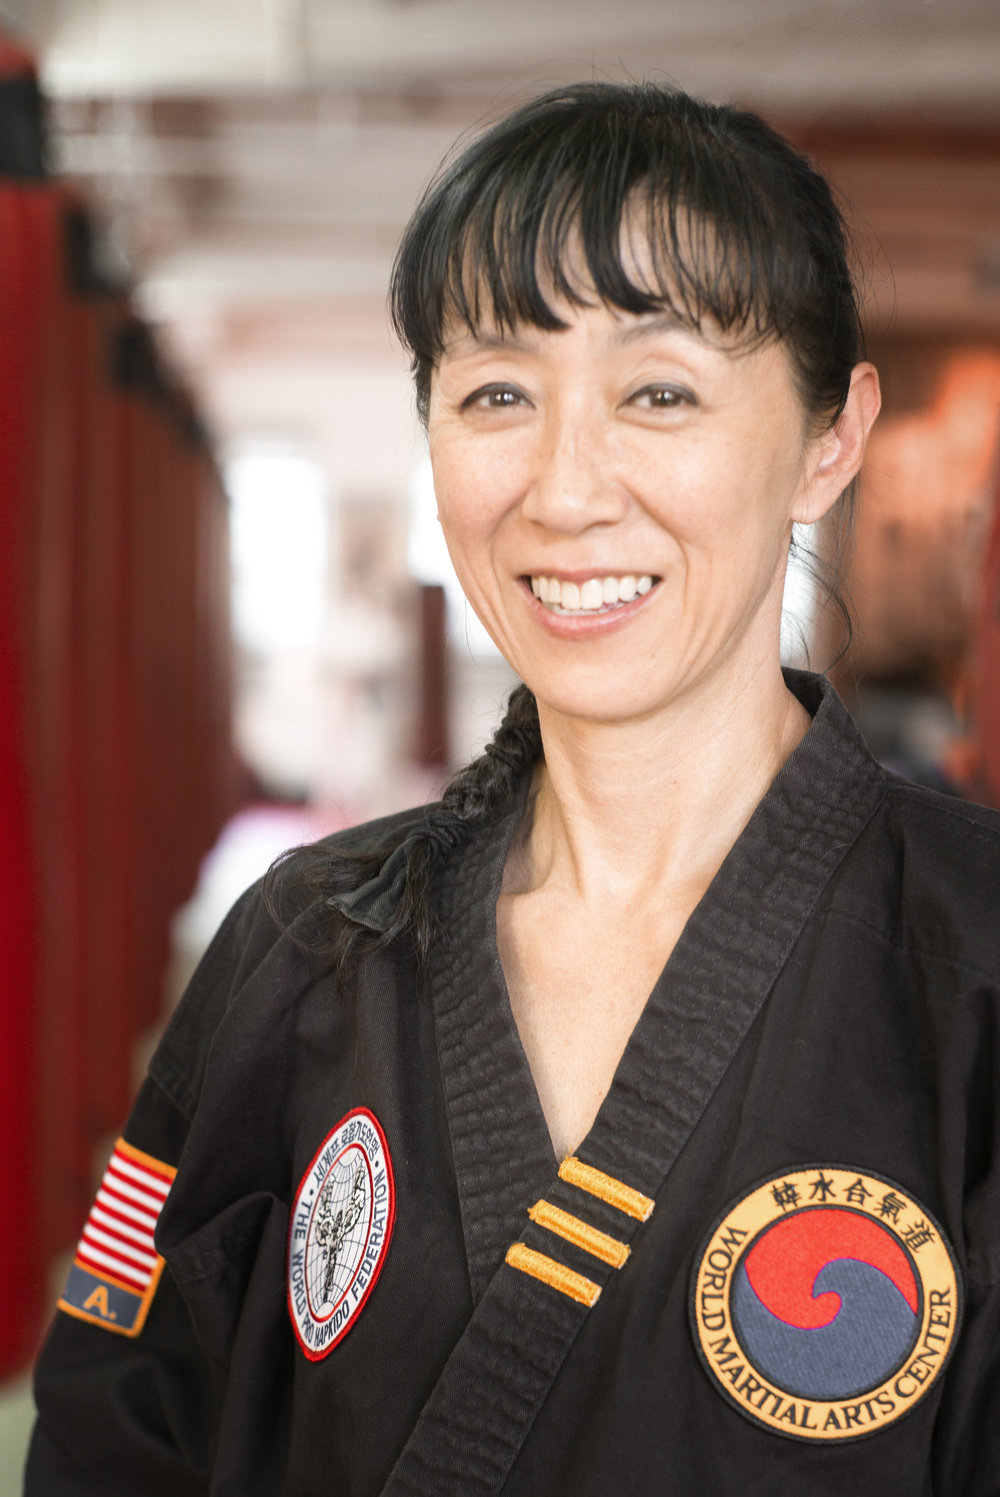 Certified Instructor Sung E Bai  started training in 2006 and earned her 1st Dan Black Belt in HapKiDo in 2015. She began teaching as an Assistant Instructor for children classes in 2012, and later also started teaching adult classes. For over 3 decades, she has been a social justice organizer and was a certified advocate for domestic violence / sexual assault survivors for over 10 years. a leadership coach since 2008, she holds MA and MPhil degrees from Columbia University.